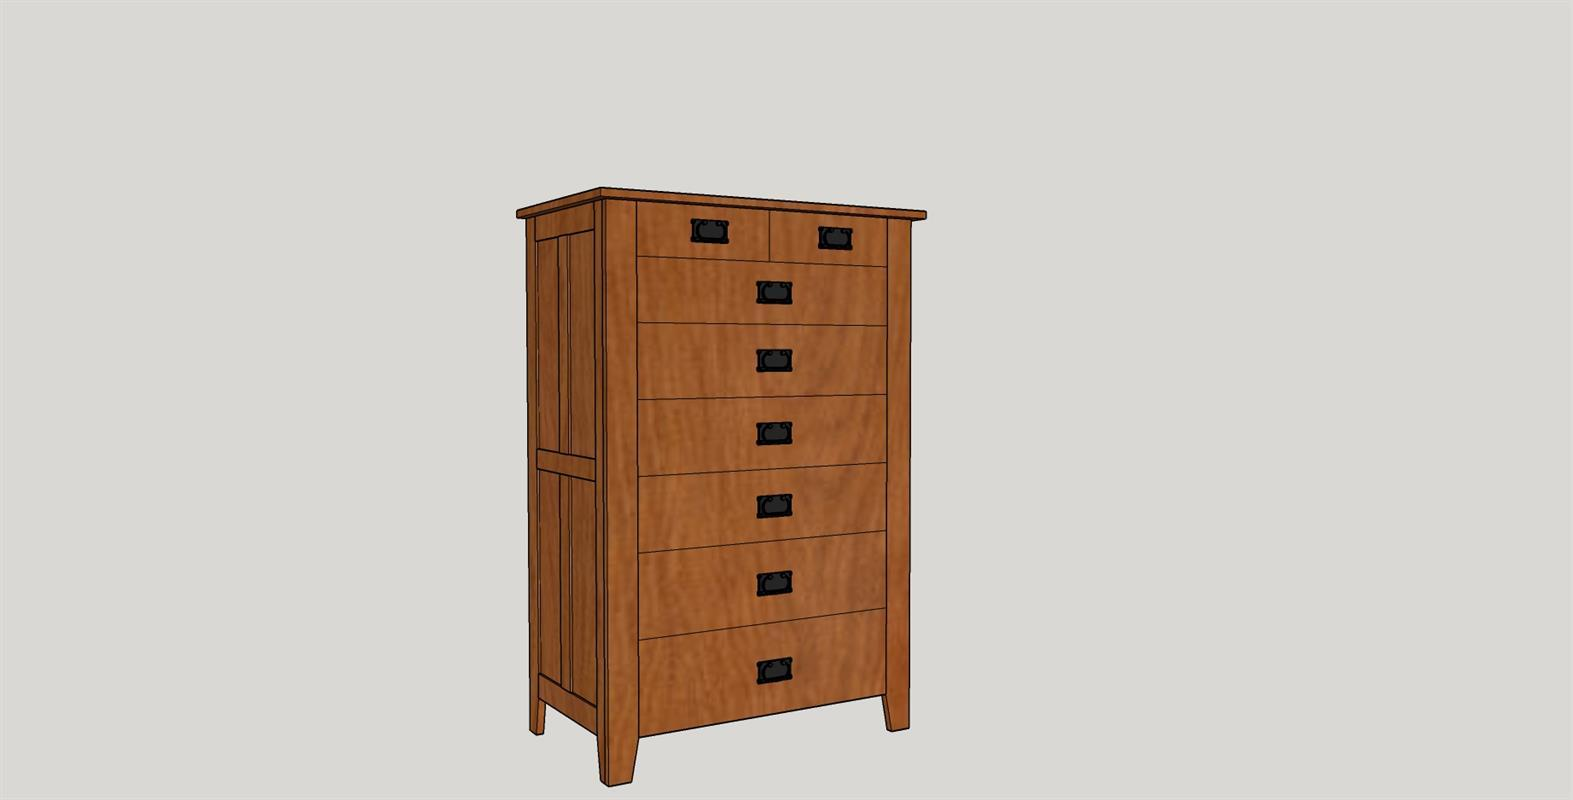 craftsman-chest-of-drawers-colored